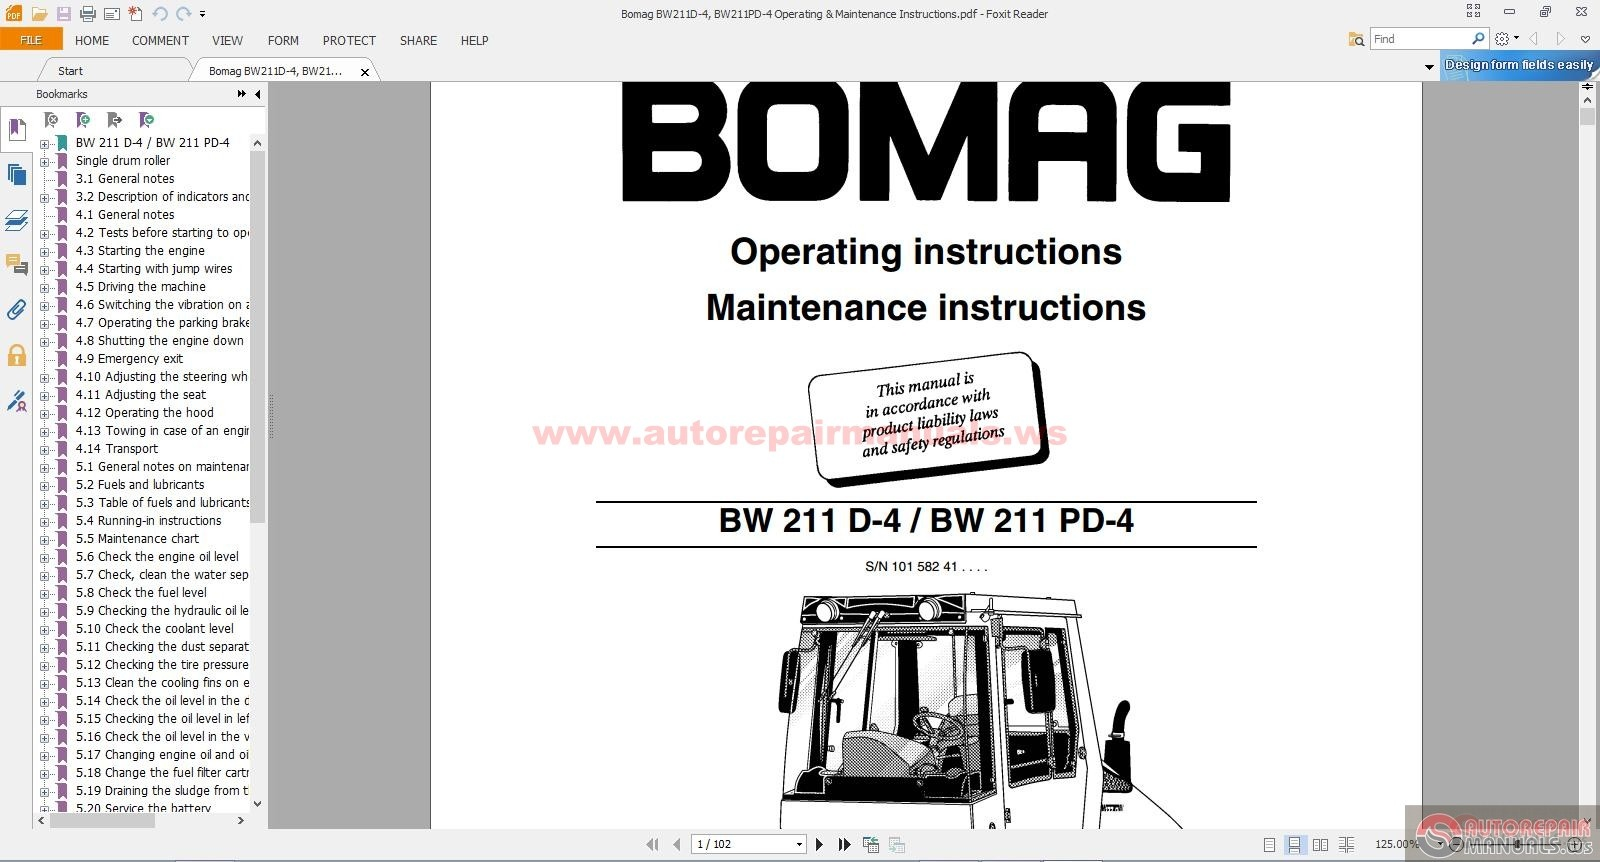 Bomag_BW211D 4_BW211PD 4_Operating_Maintenance_Instructions bomag bw211d 4, bw211pd 4 operating & maintenance instructions bomag bw-90 wiring diagram at alyssarenee.co